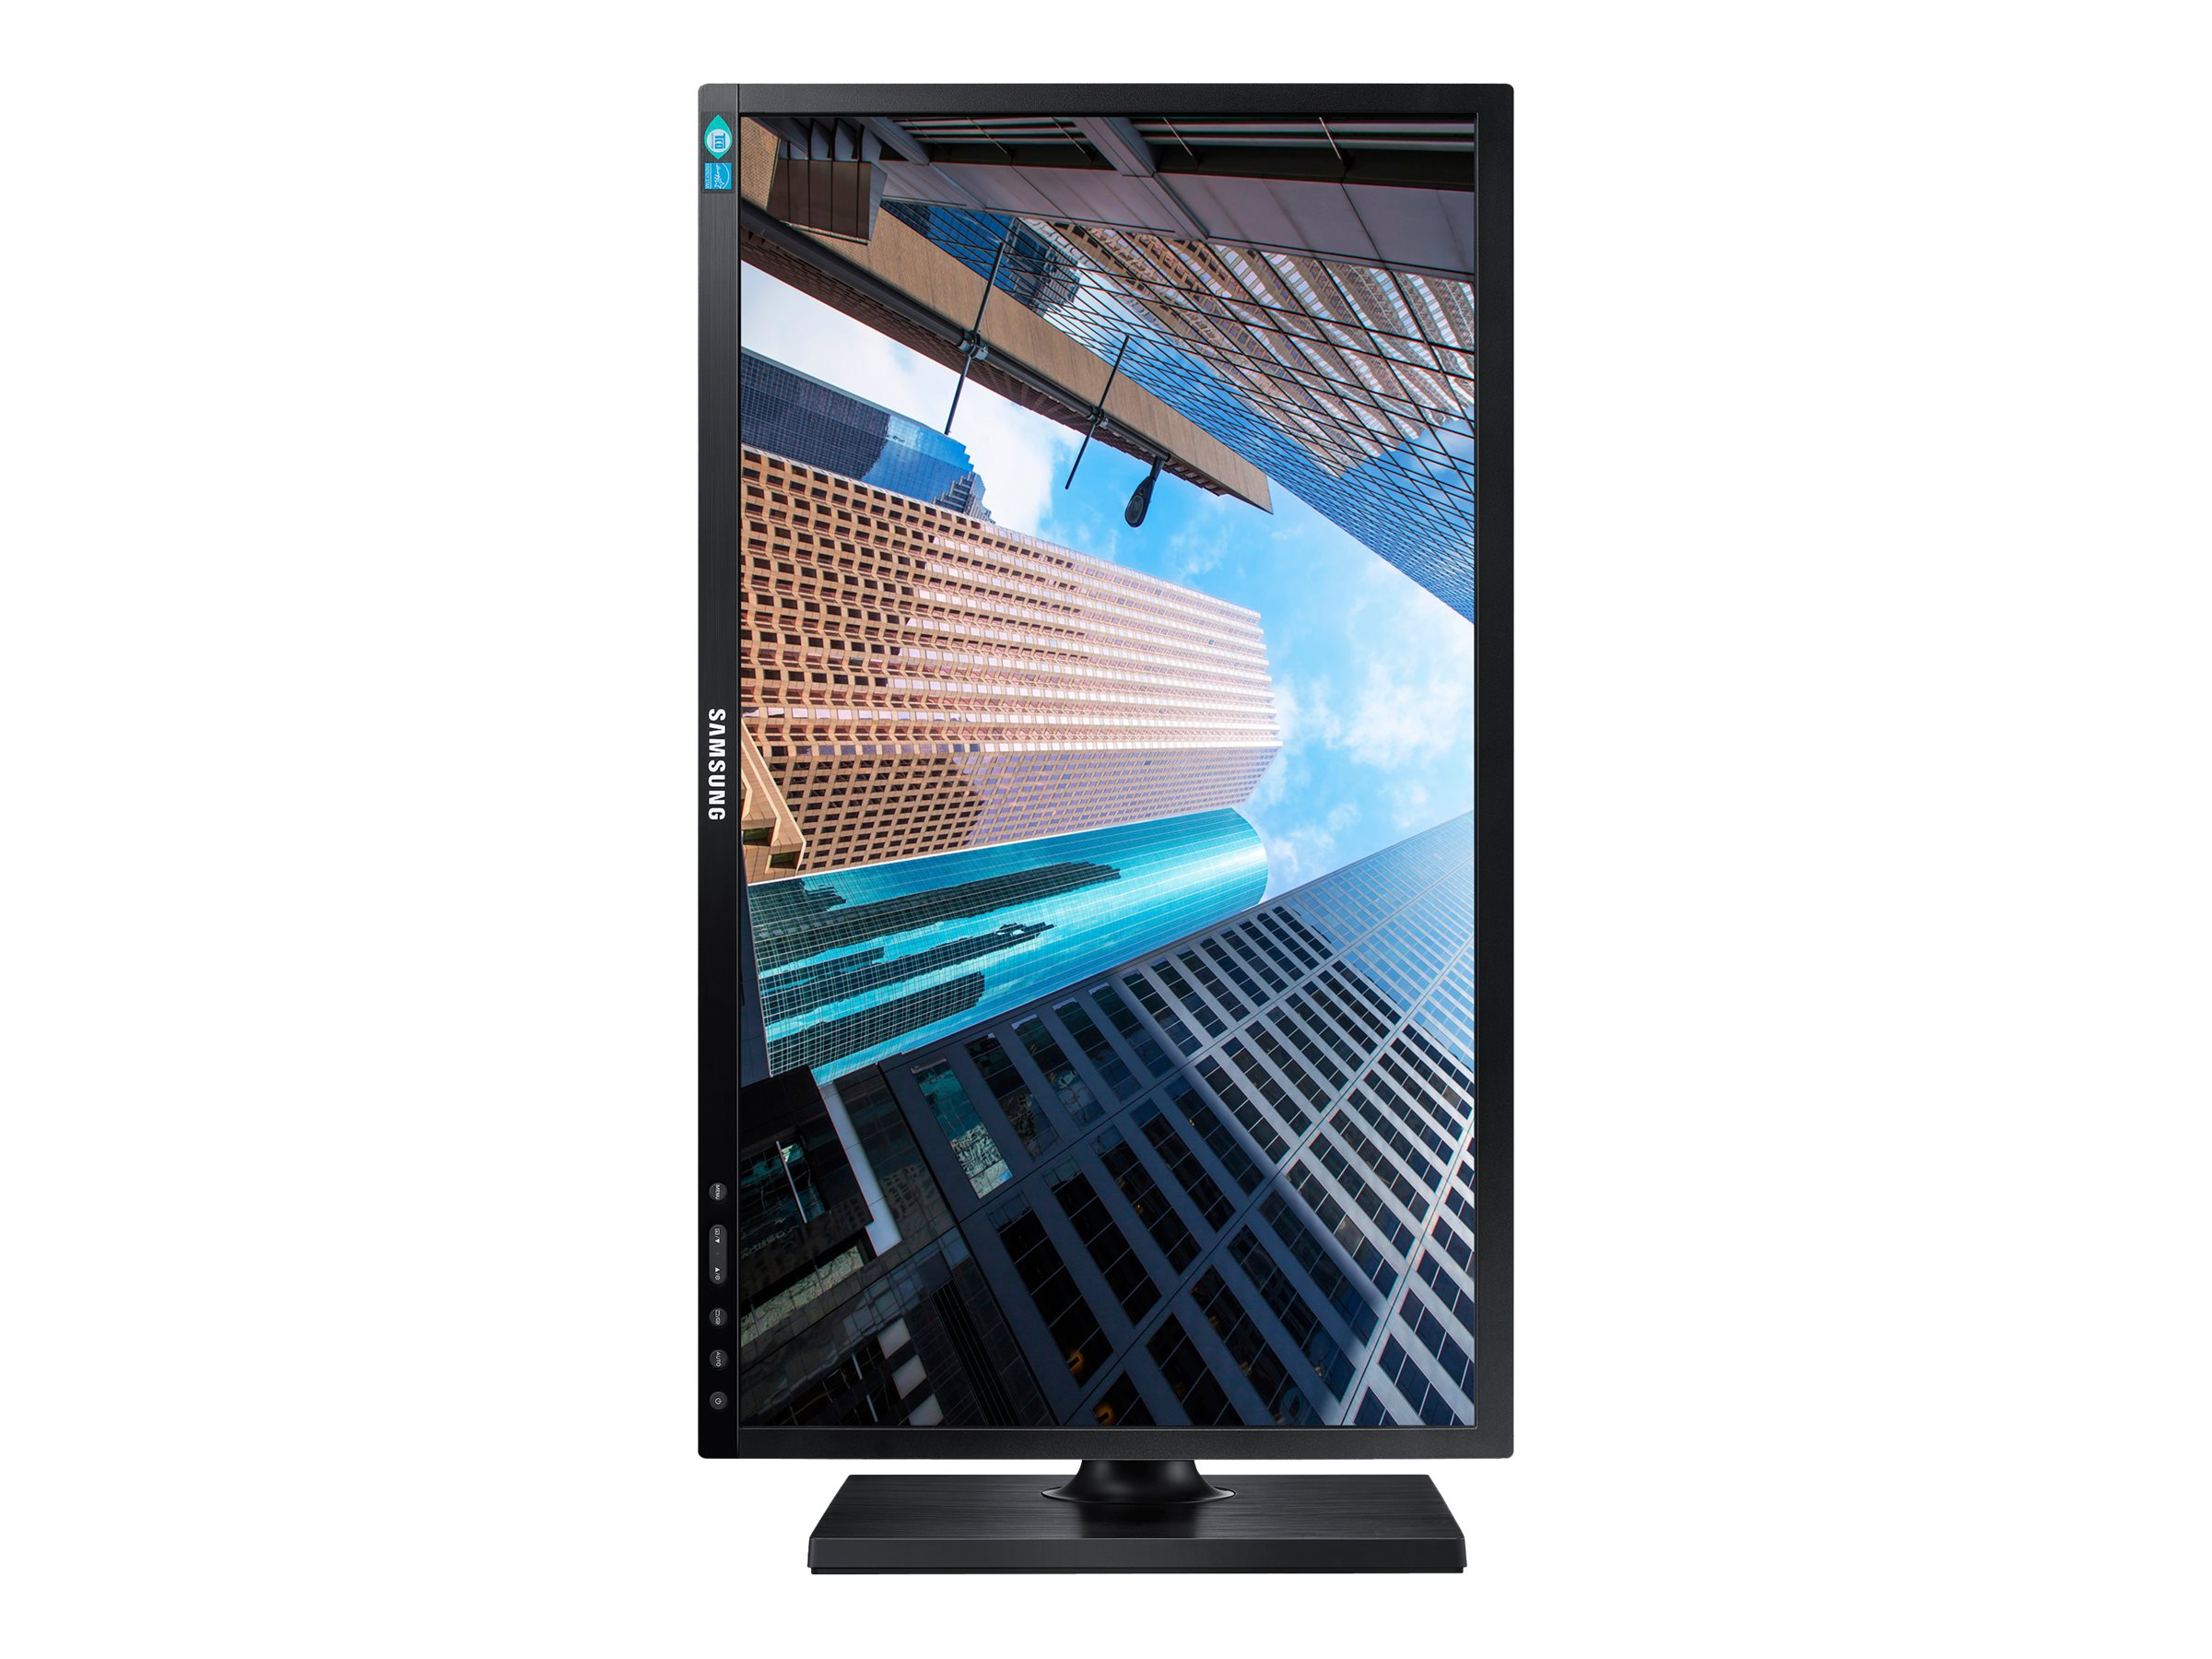 Samsung 22 SE450 Series LED-LCD Monitor, Black, S22E450BW